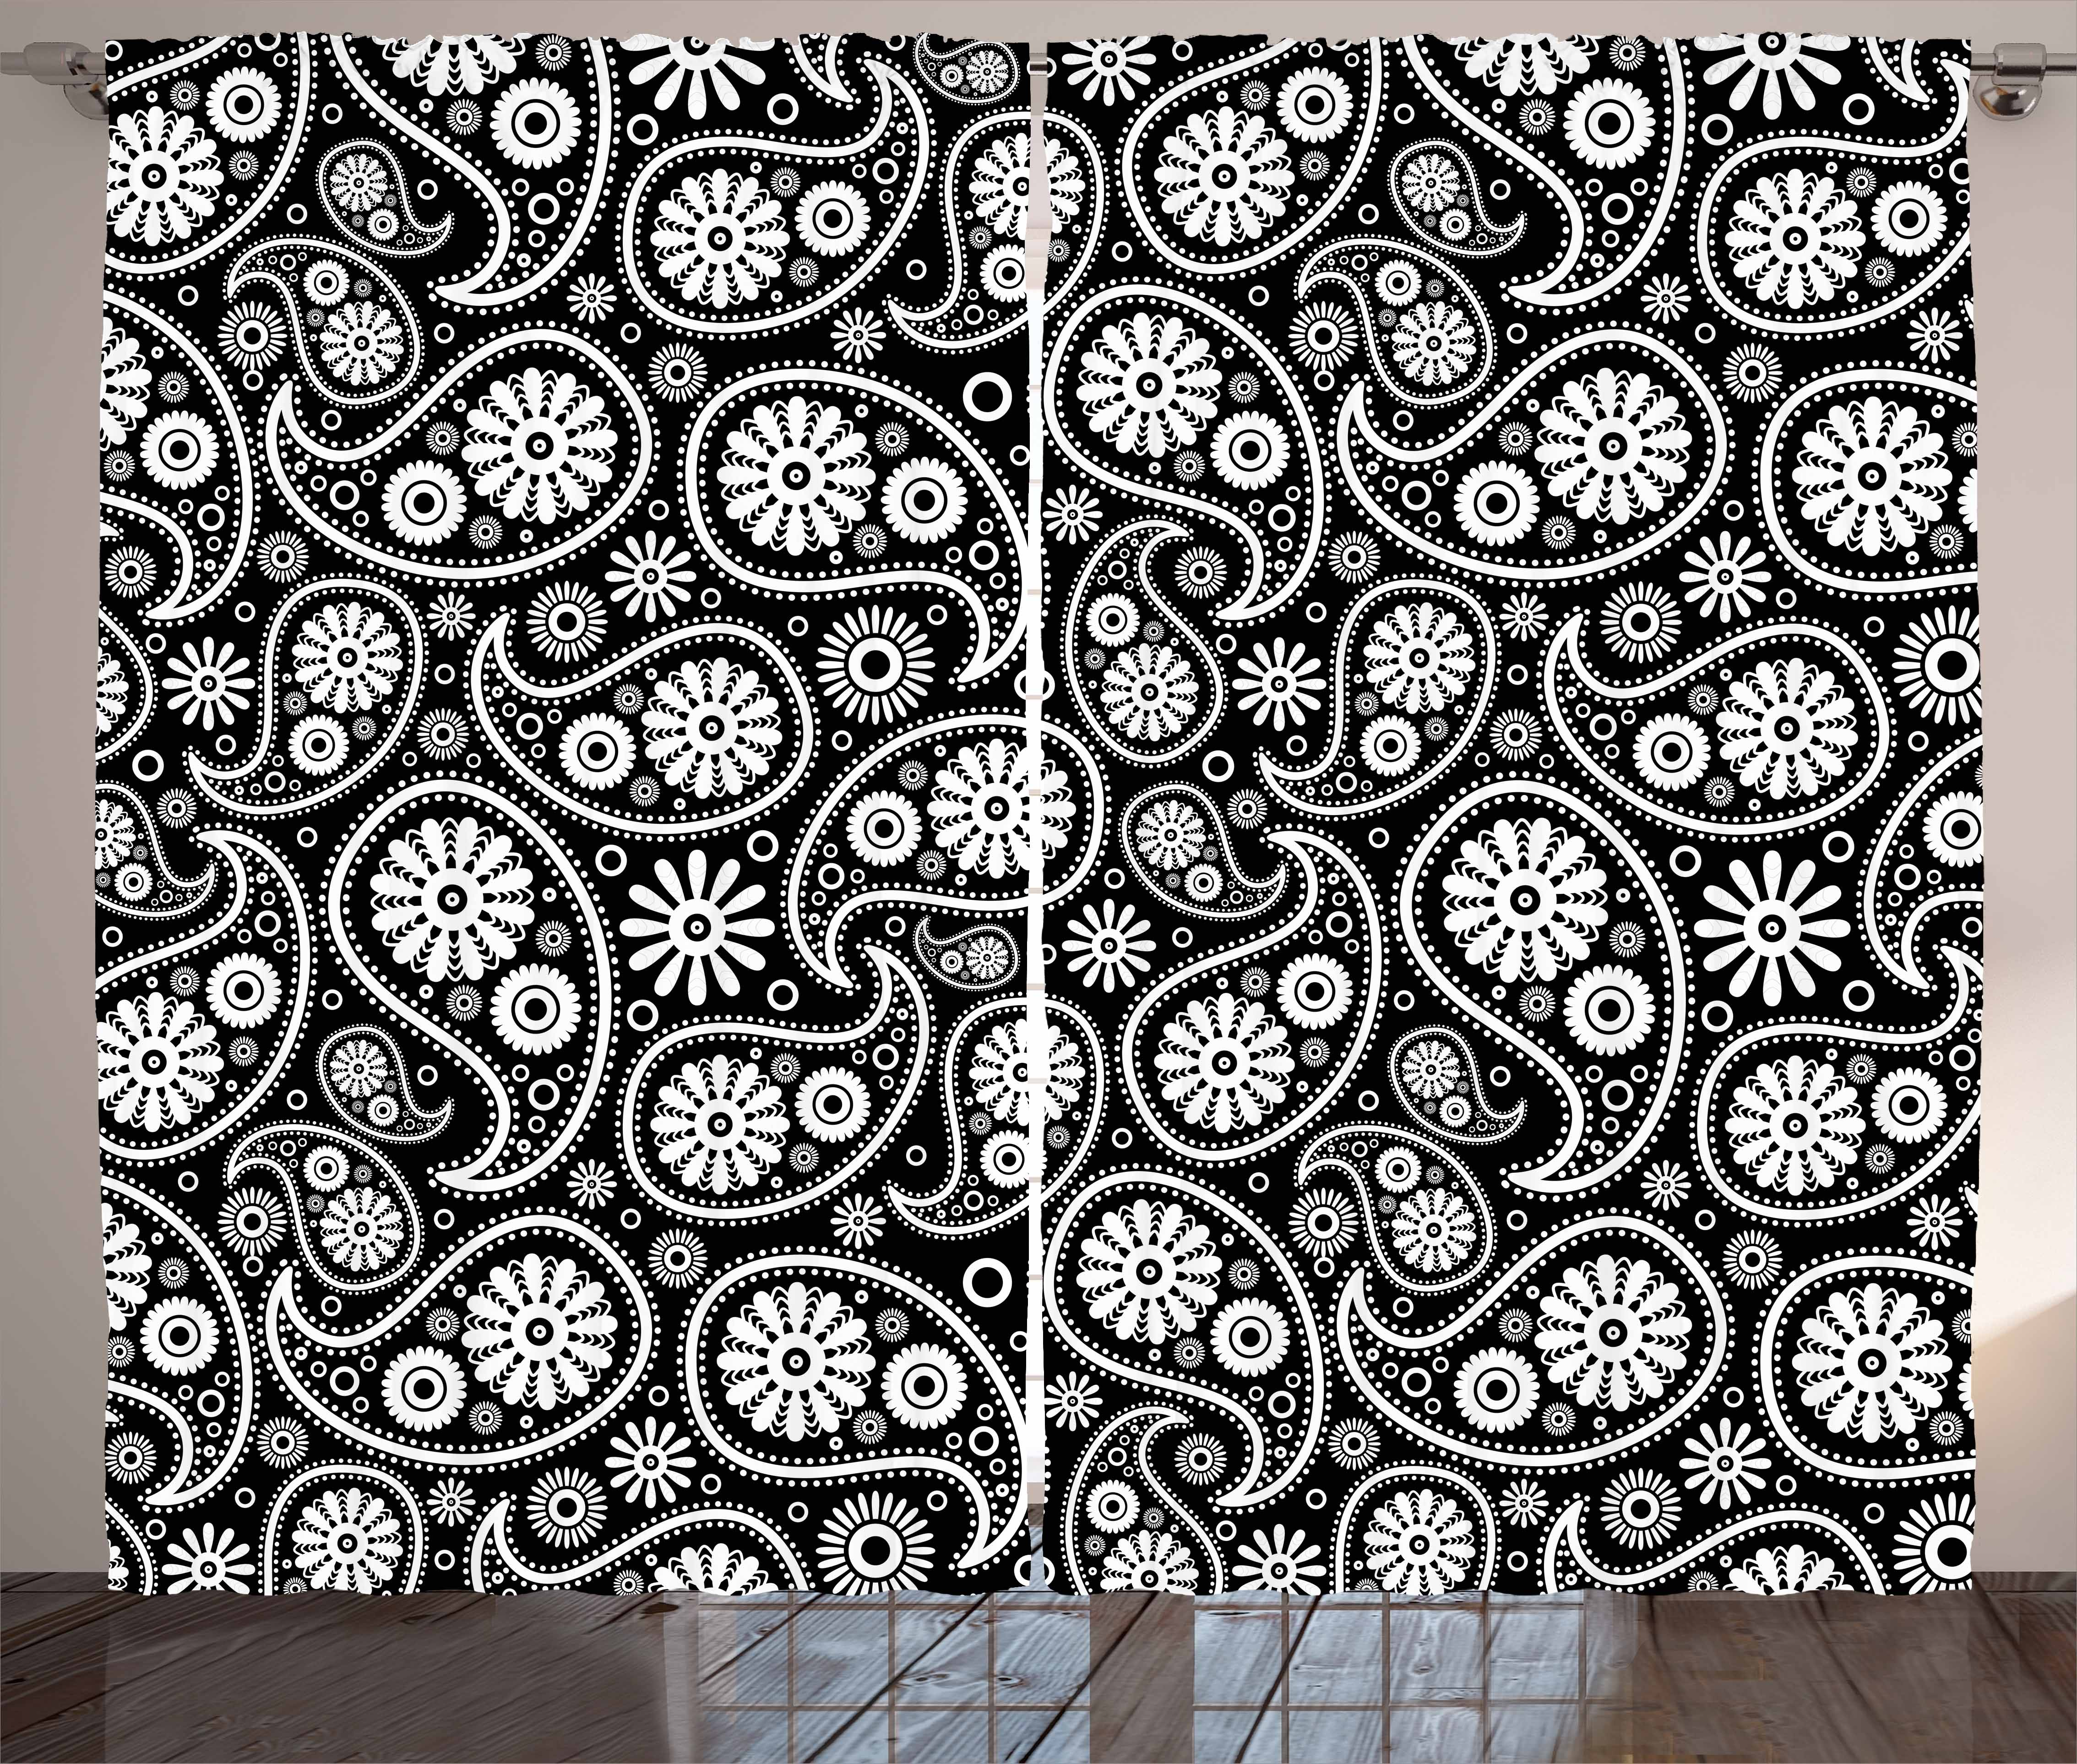 Black and White Curtains 2 Panels Set, Nostalgic Paisley Teardrop Motifs  with Florals Persian Culture and Art, Window Drapes for Living Room  Bedroom, ...